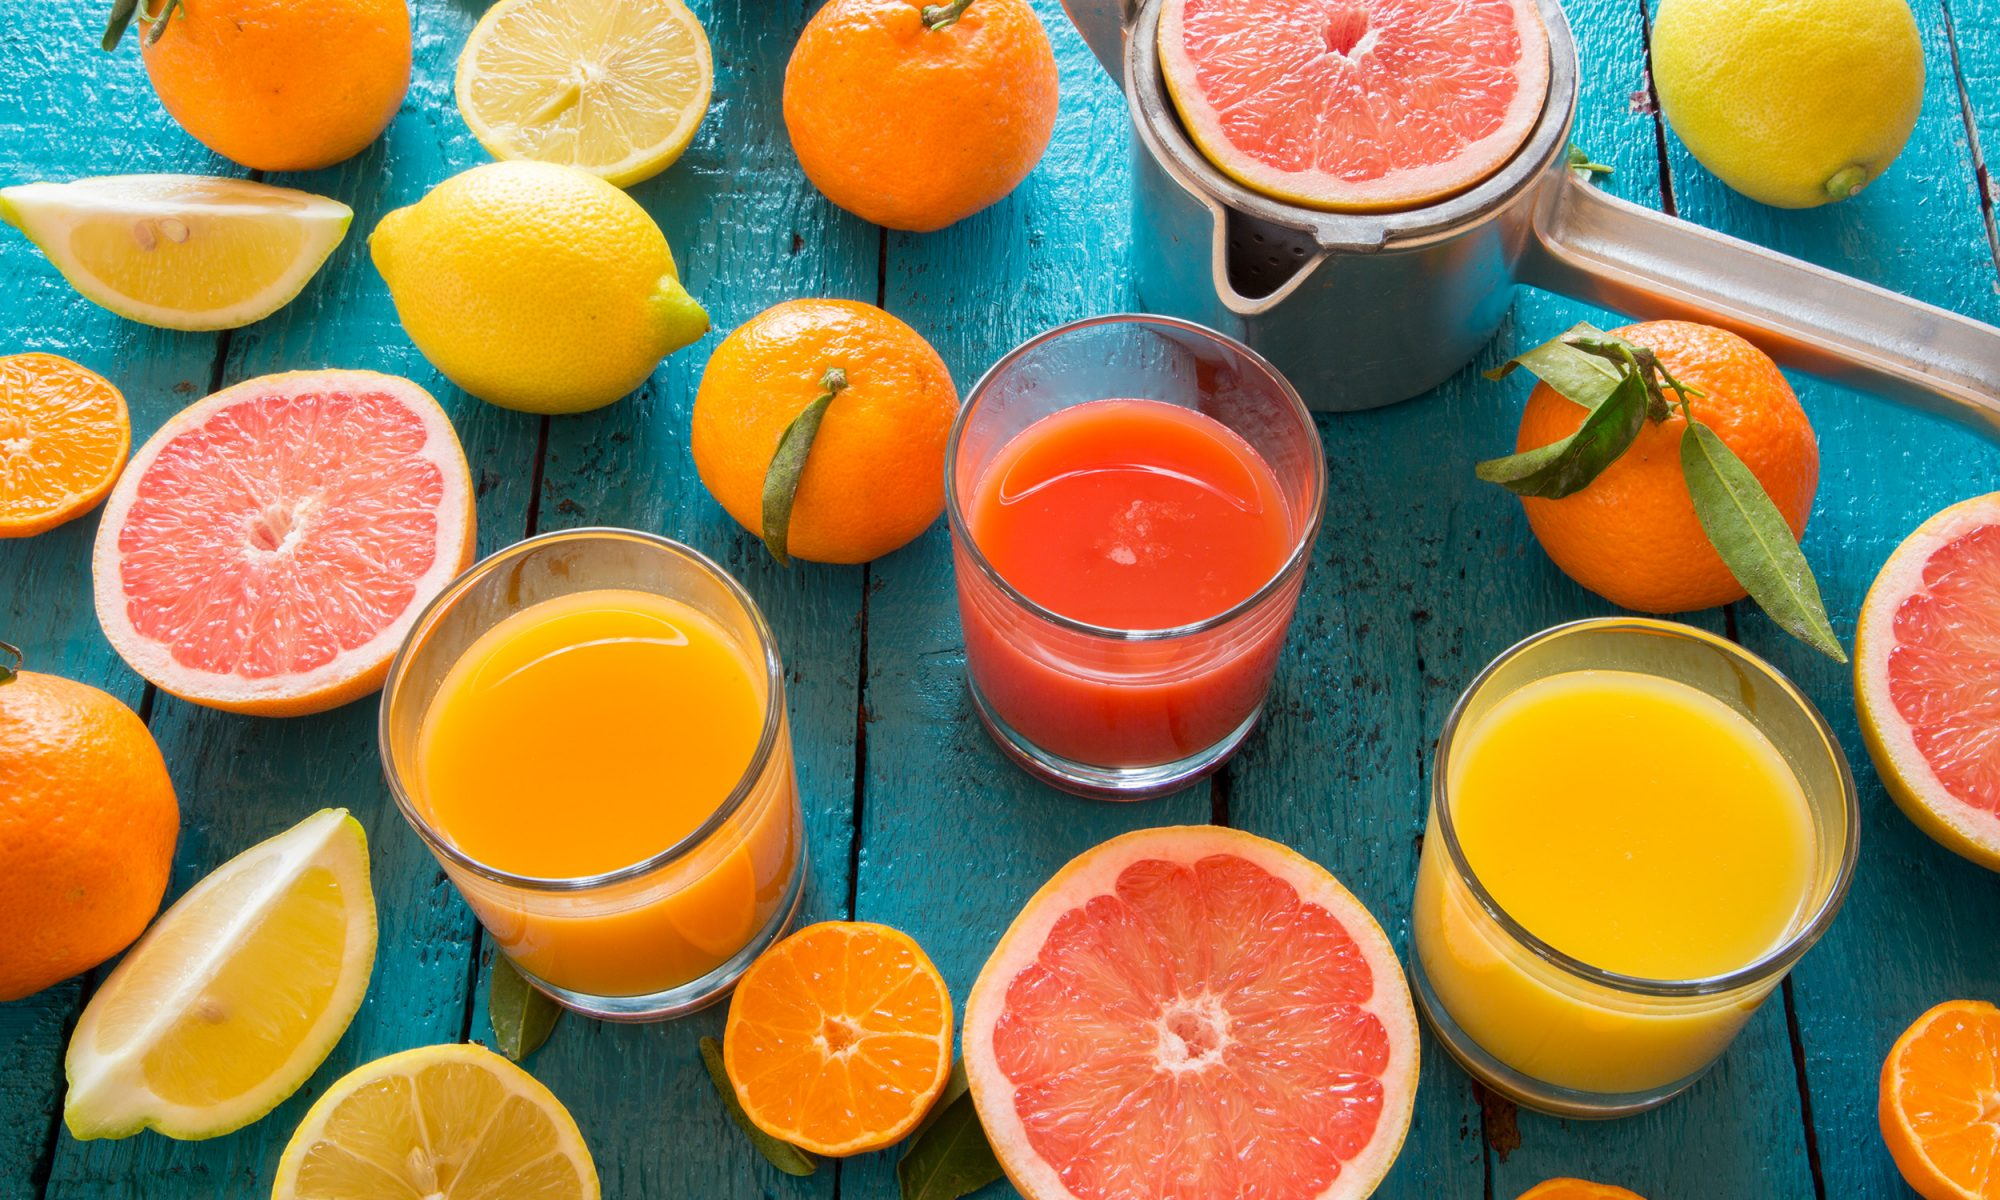 EC: 5 Stress-Relieving Superfoods That Will Start Your Day Off Right